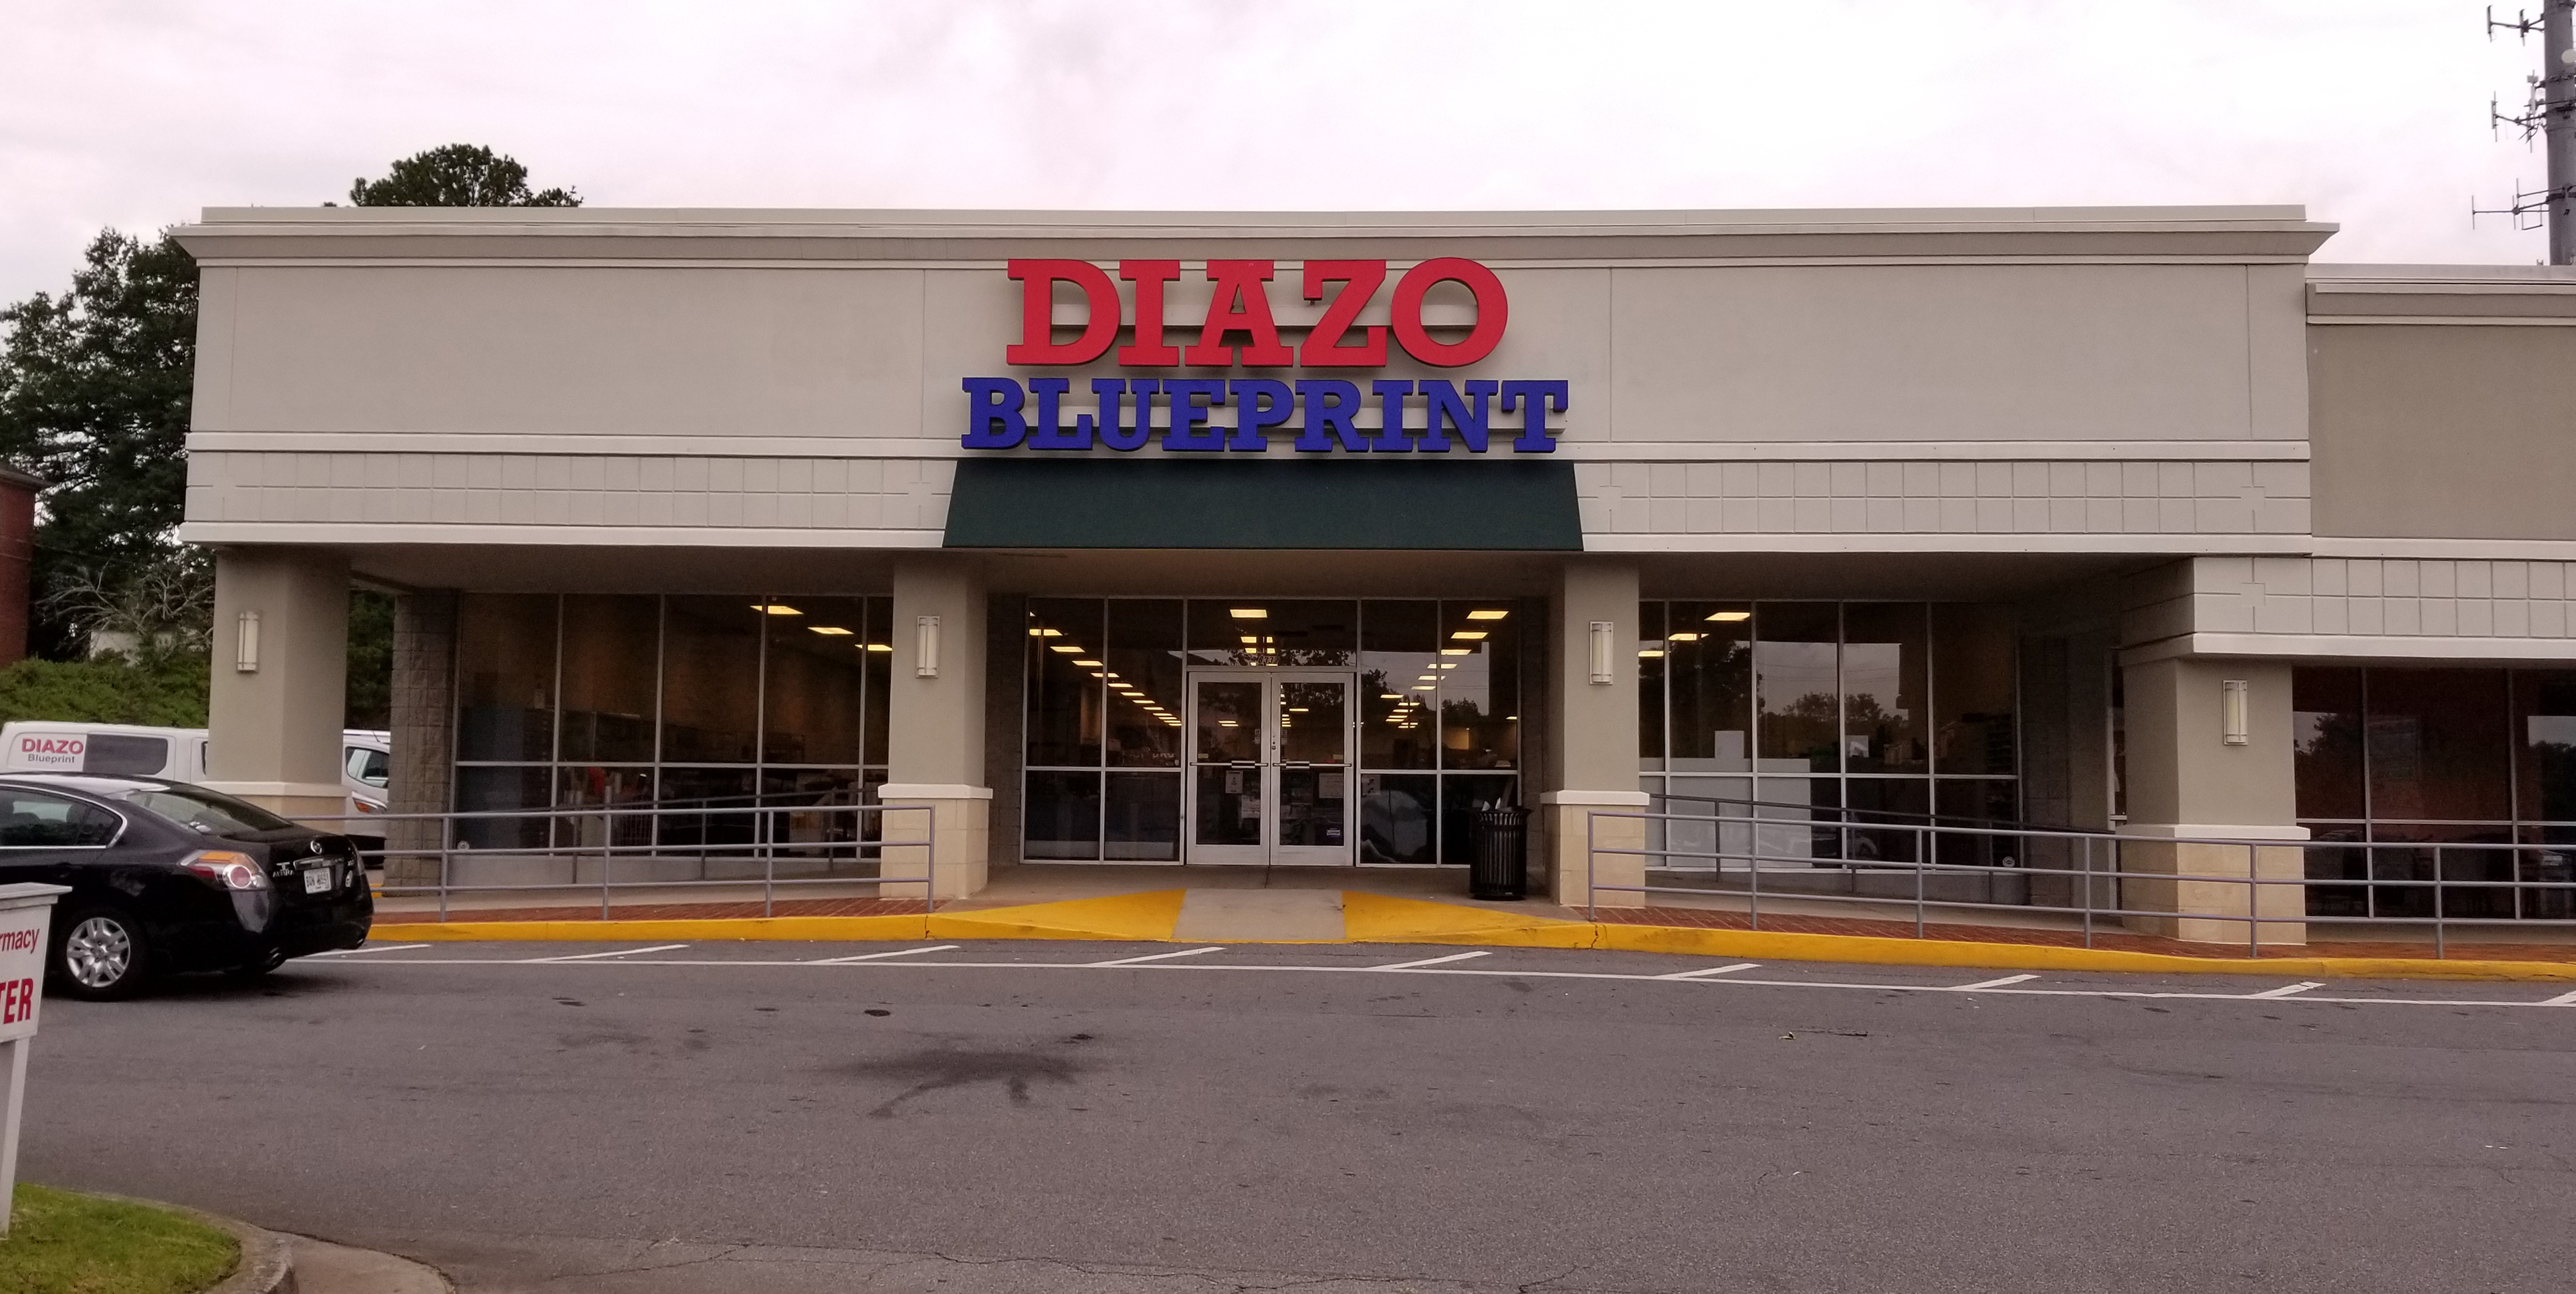 Diazo specialty blueprint inc 3872 roswell rd ne ste a8 atlanta ga diazo specialty blueprint inc 3872 roswell rd ne ste a8 atlanta ga 30342 yp malvernweather Image collections